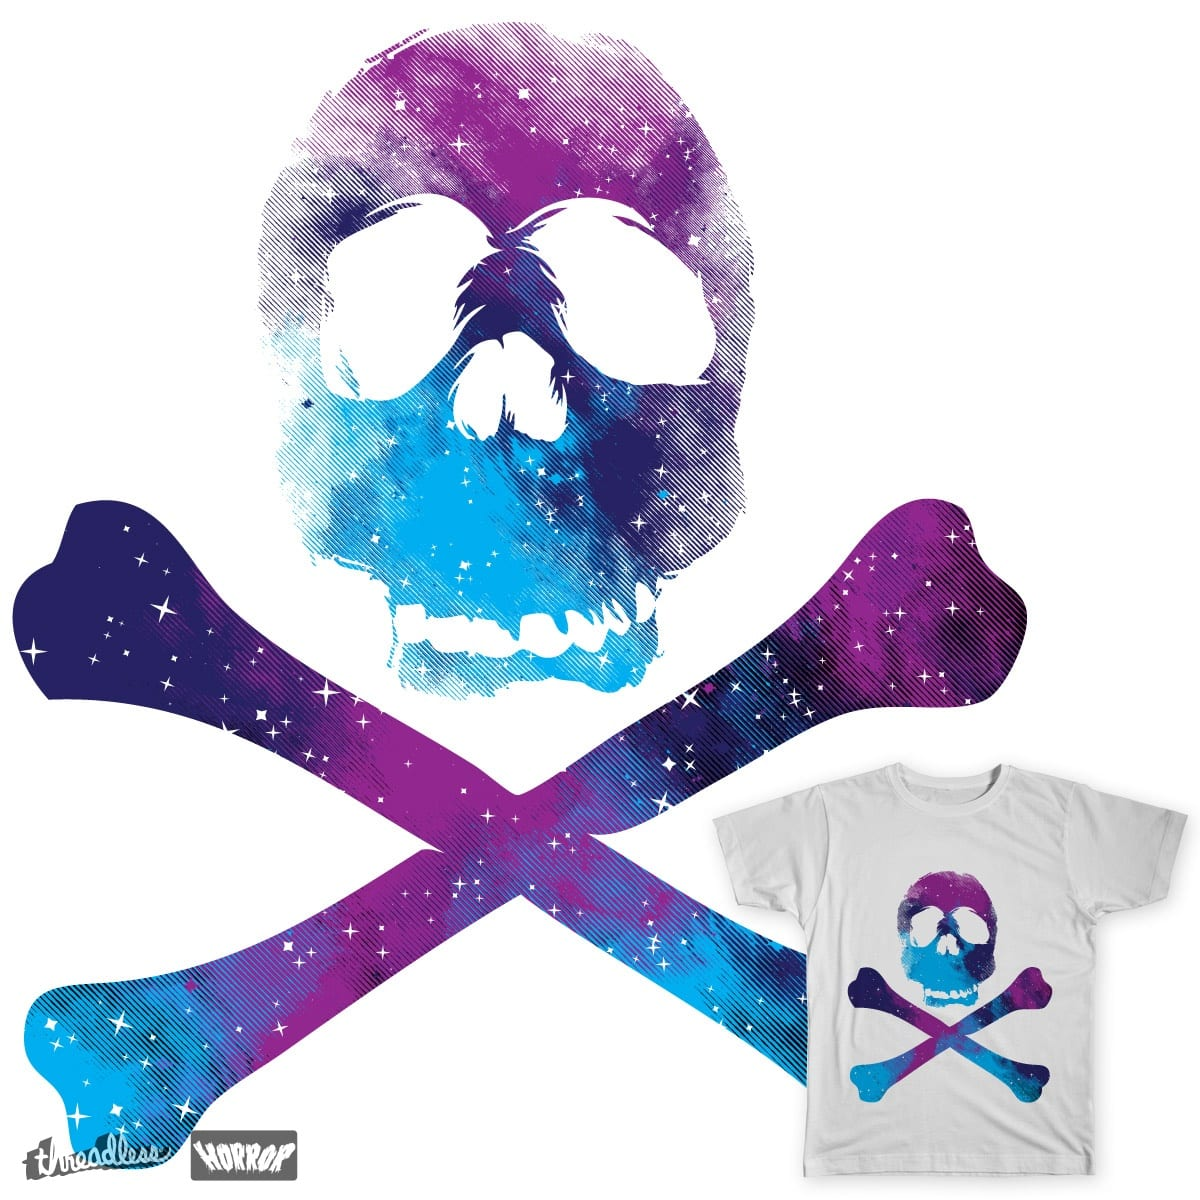 Skullaxy by daletheskater on Threadless